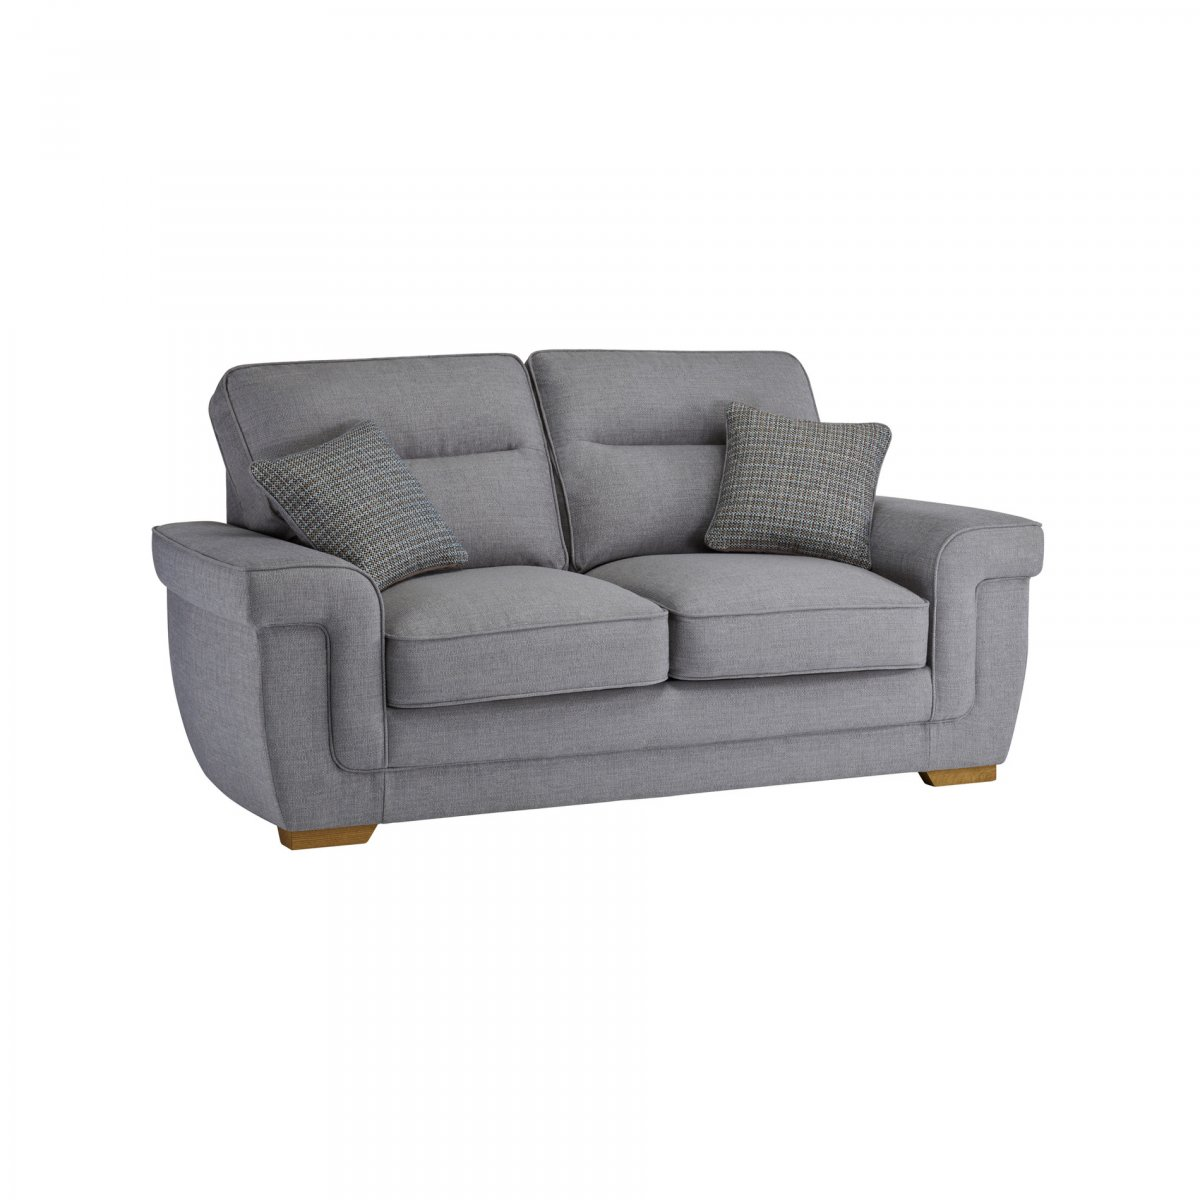 2 seat sofa bed uk lazy boy queen size kirby seater with deluxe mattress barley silver